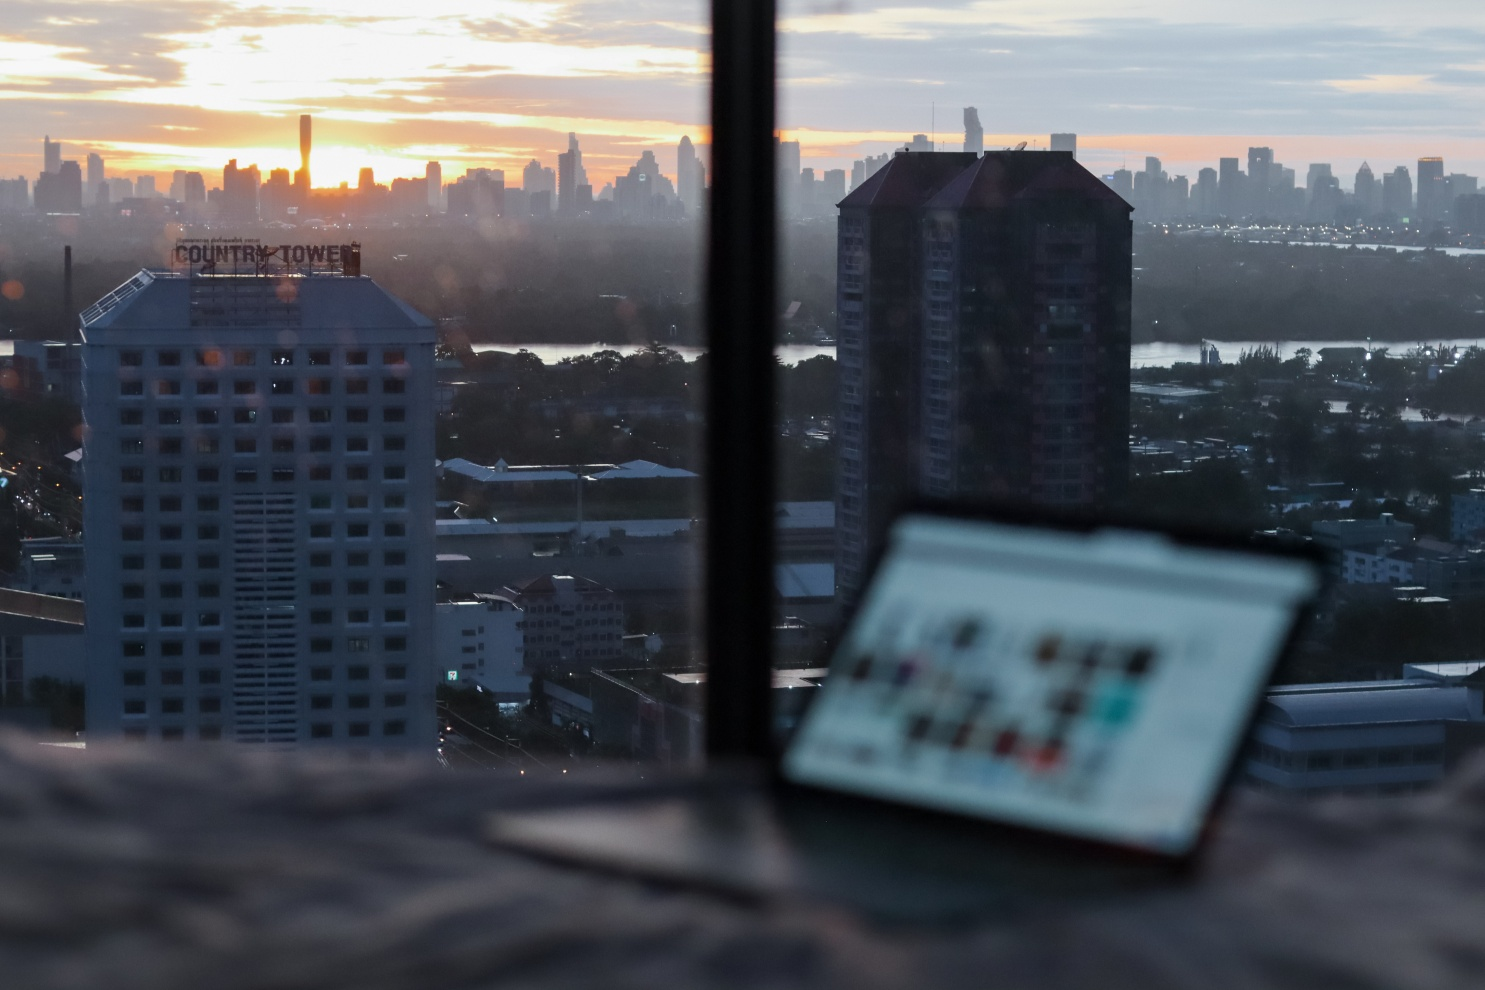 Laptop with skyscrapers in the background